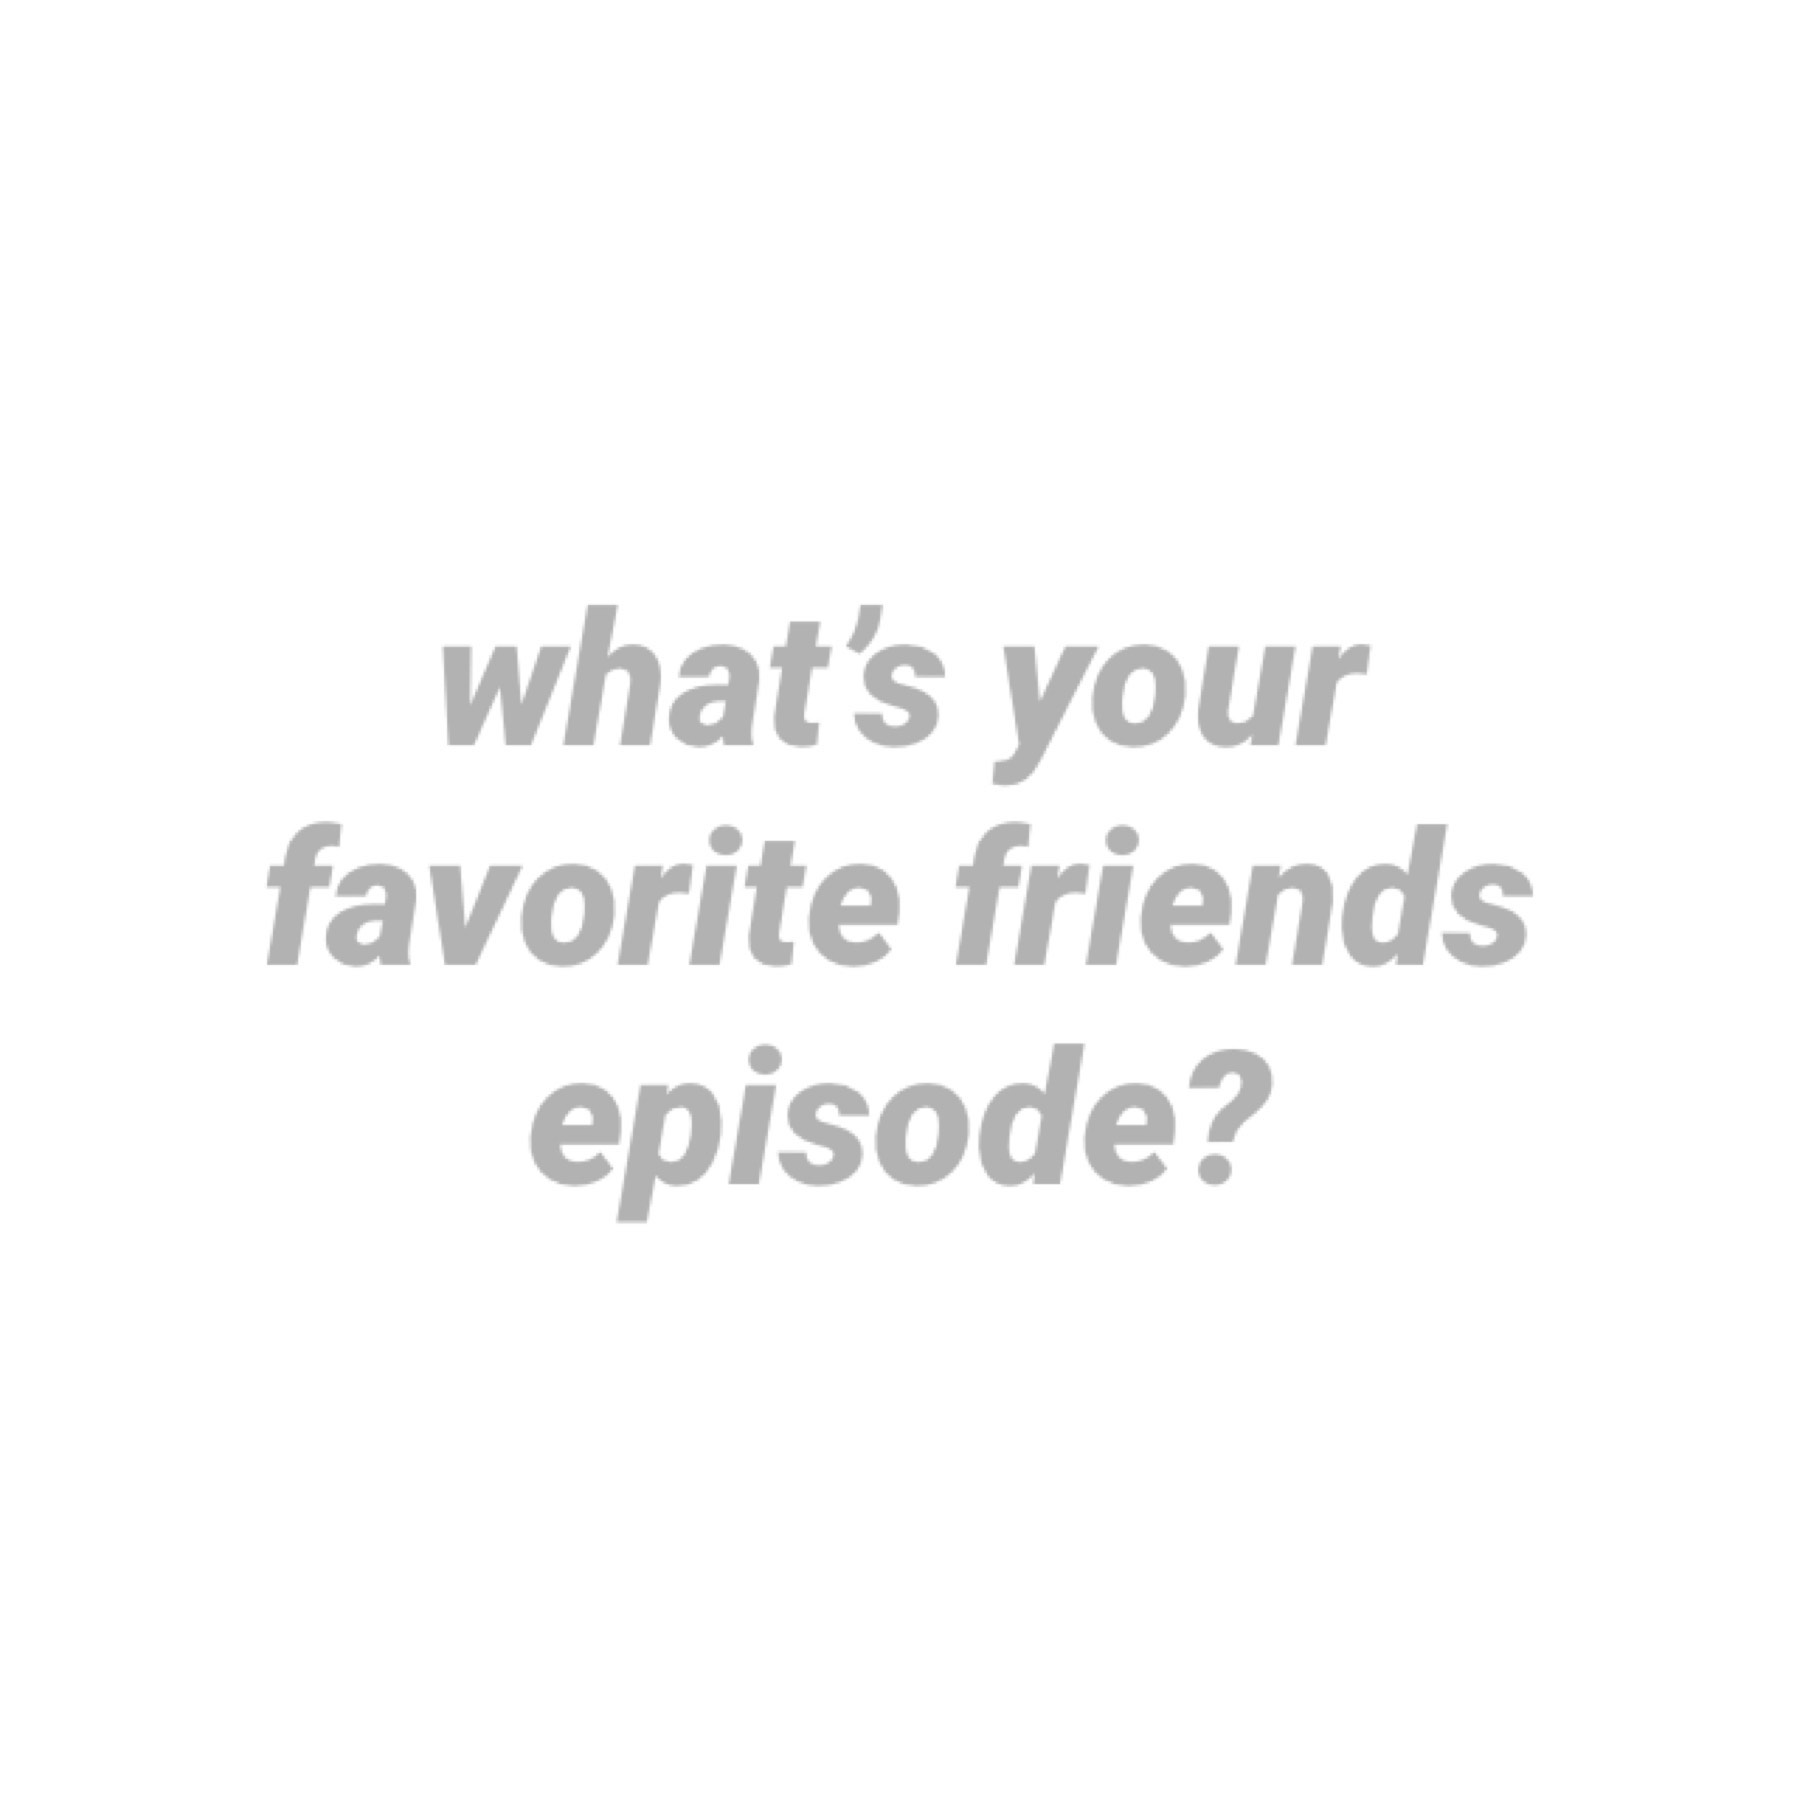 I feel like watching friends but idk which episode — maybe I'll watch the thanksgiving ones I want something cozy ☕️